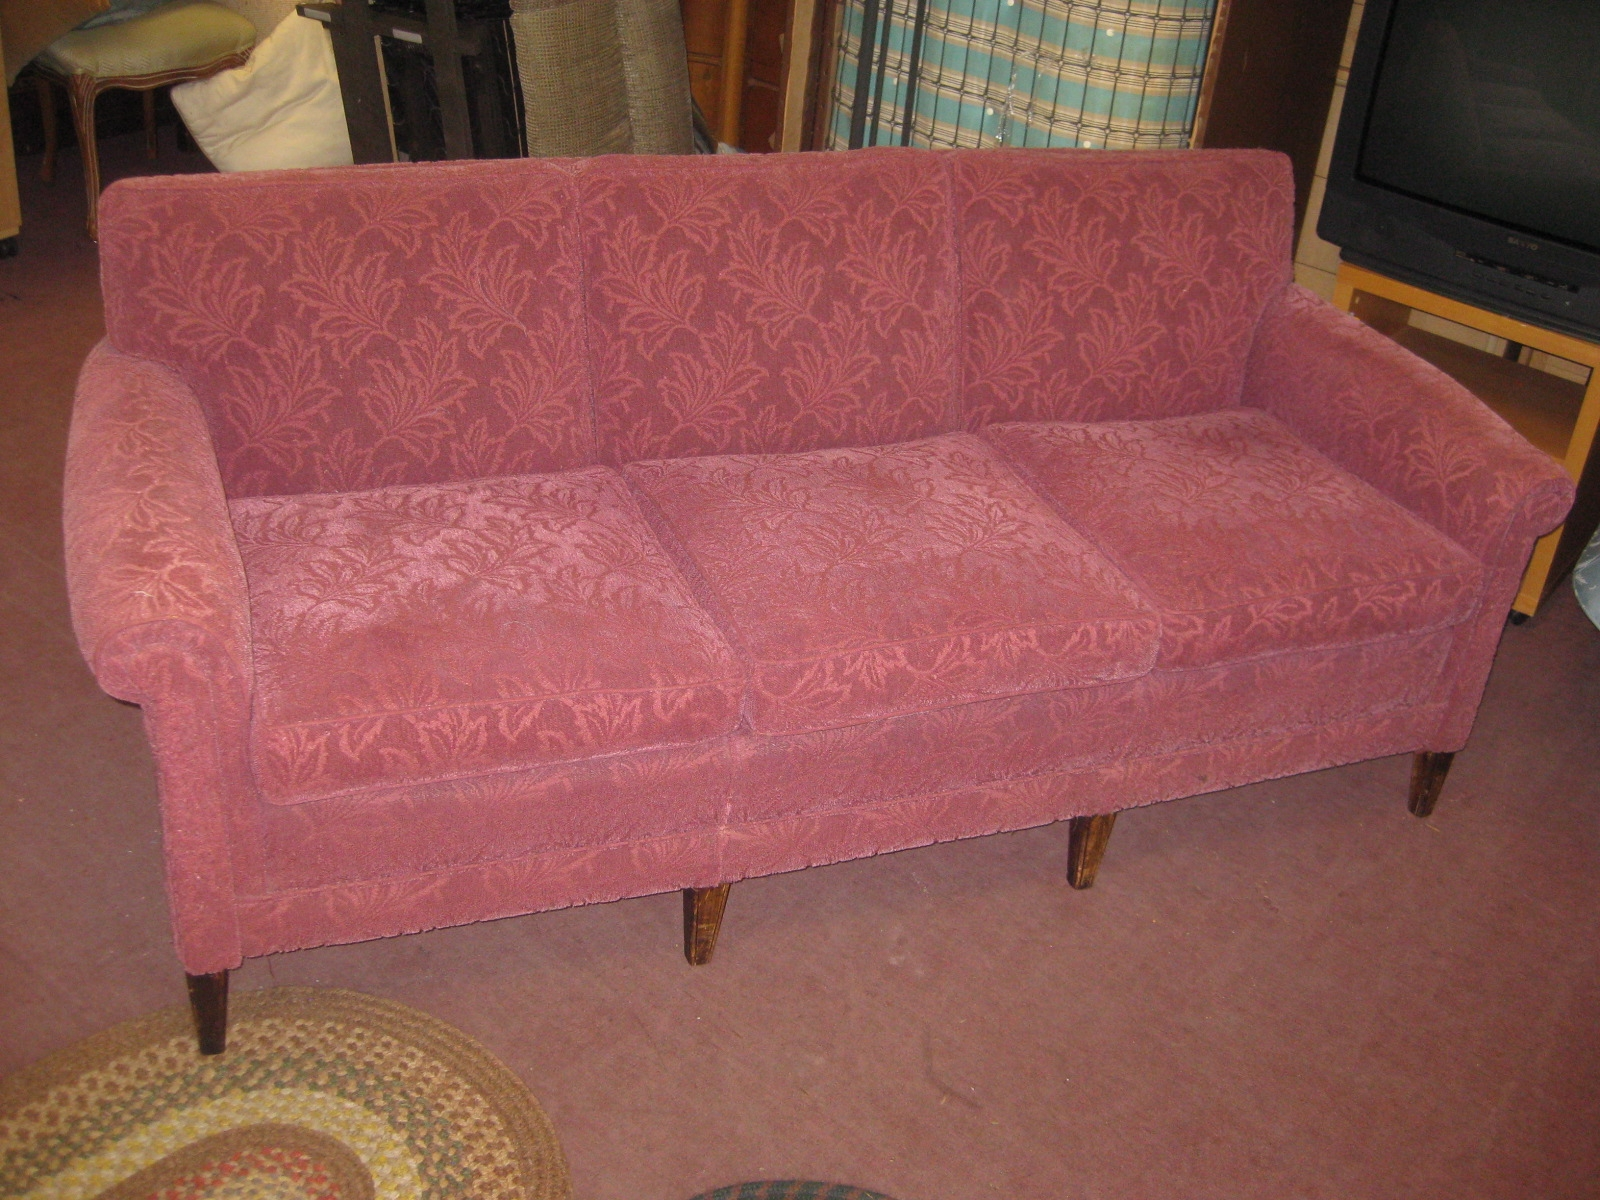 Uhuru Furniture Collectibles Sold 1930s Couch 125 Pertaining To 1930s Sofas (Image 14 of 15)